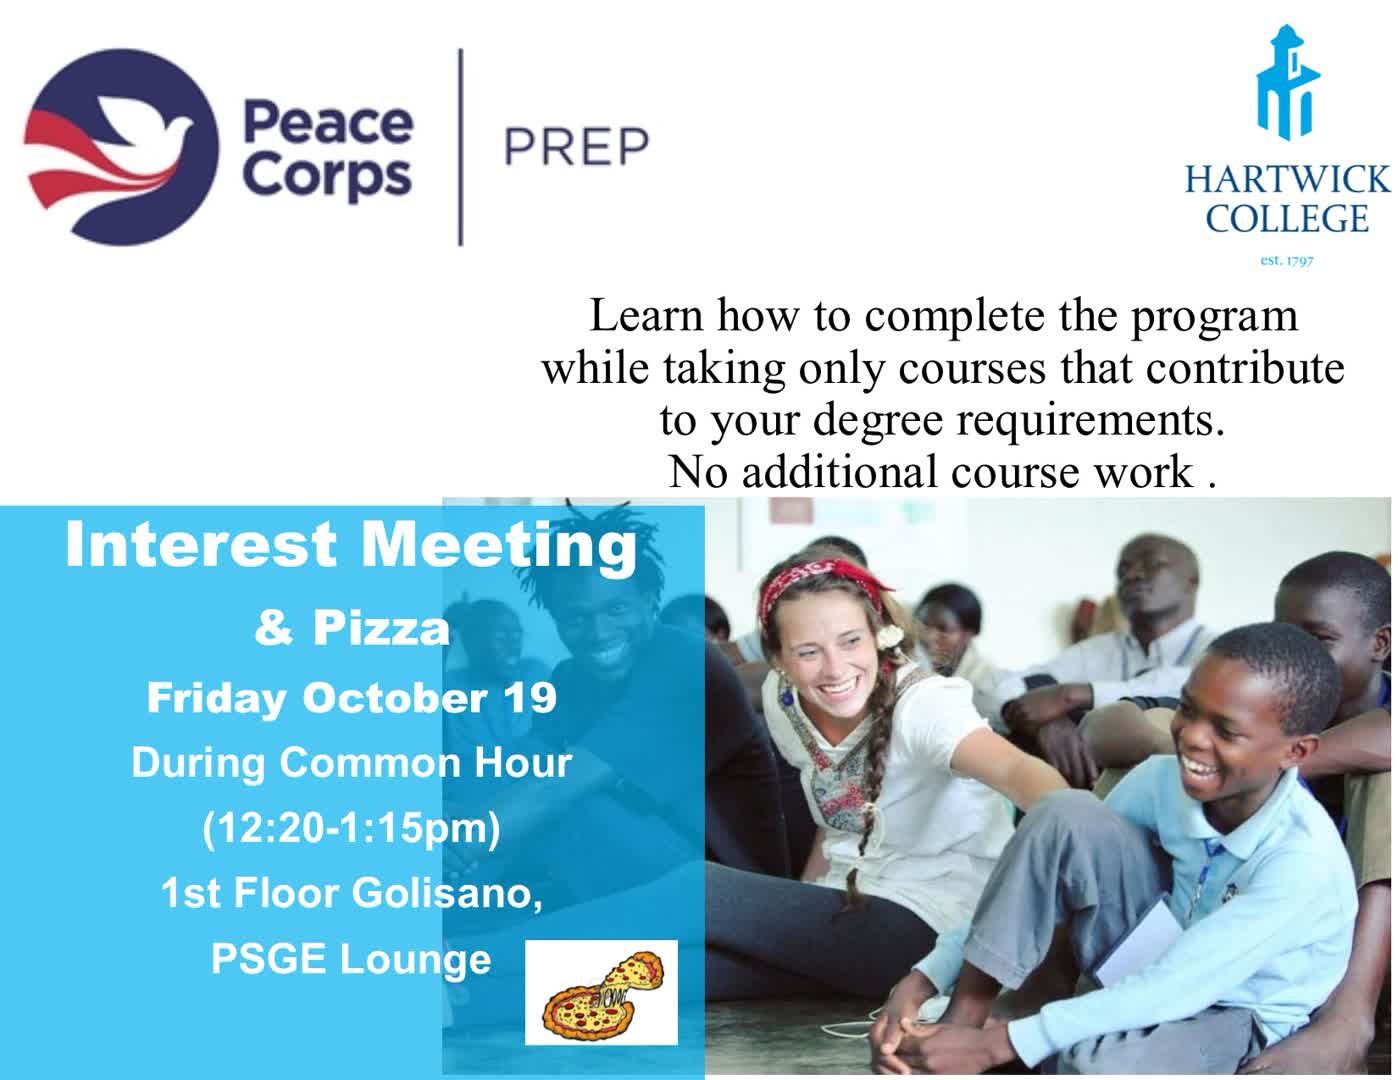 Information regarding Peace Corp Prep Interests Meeting is as follows Start date is October 17 2018 and End Date is October 19 2018 and File is Browse and Affiliation is Staff and File Name is Interest-Meeting-Flyer-2.0_comp.jpg and Panel is Main and Group Name is Office of Global Education & Service Learning and Name of Ad/Event is Peace Corp Prep Interests Meeting and Name is Ryan Schreiber and Email is schreiberr@hartwick.edu and